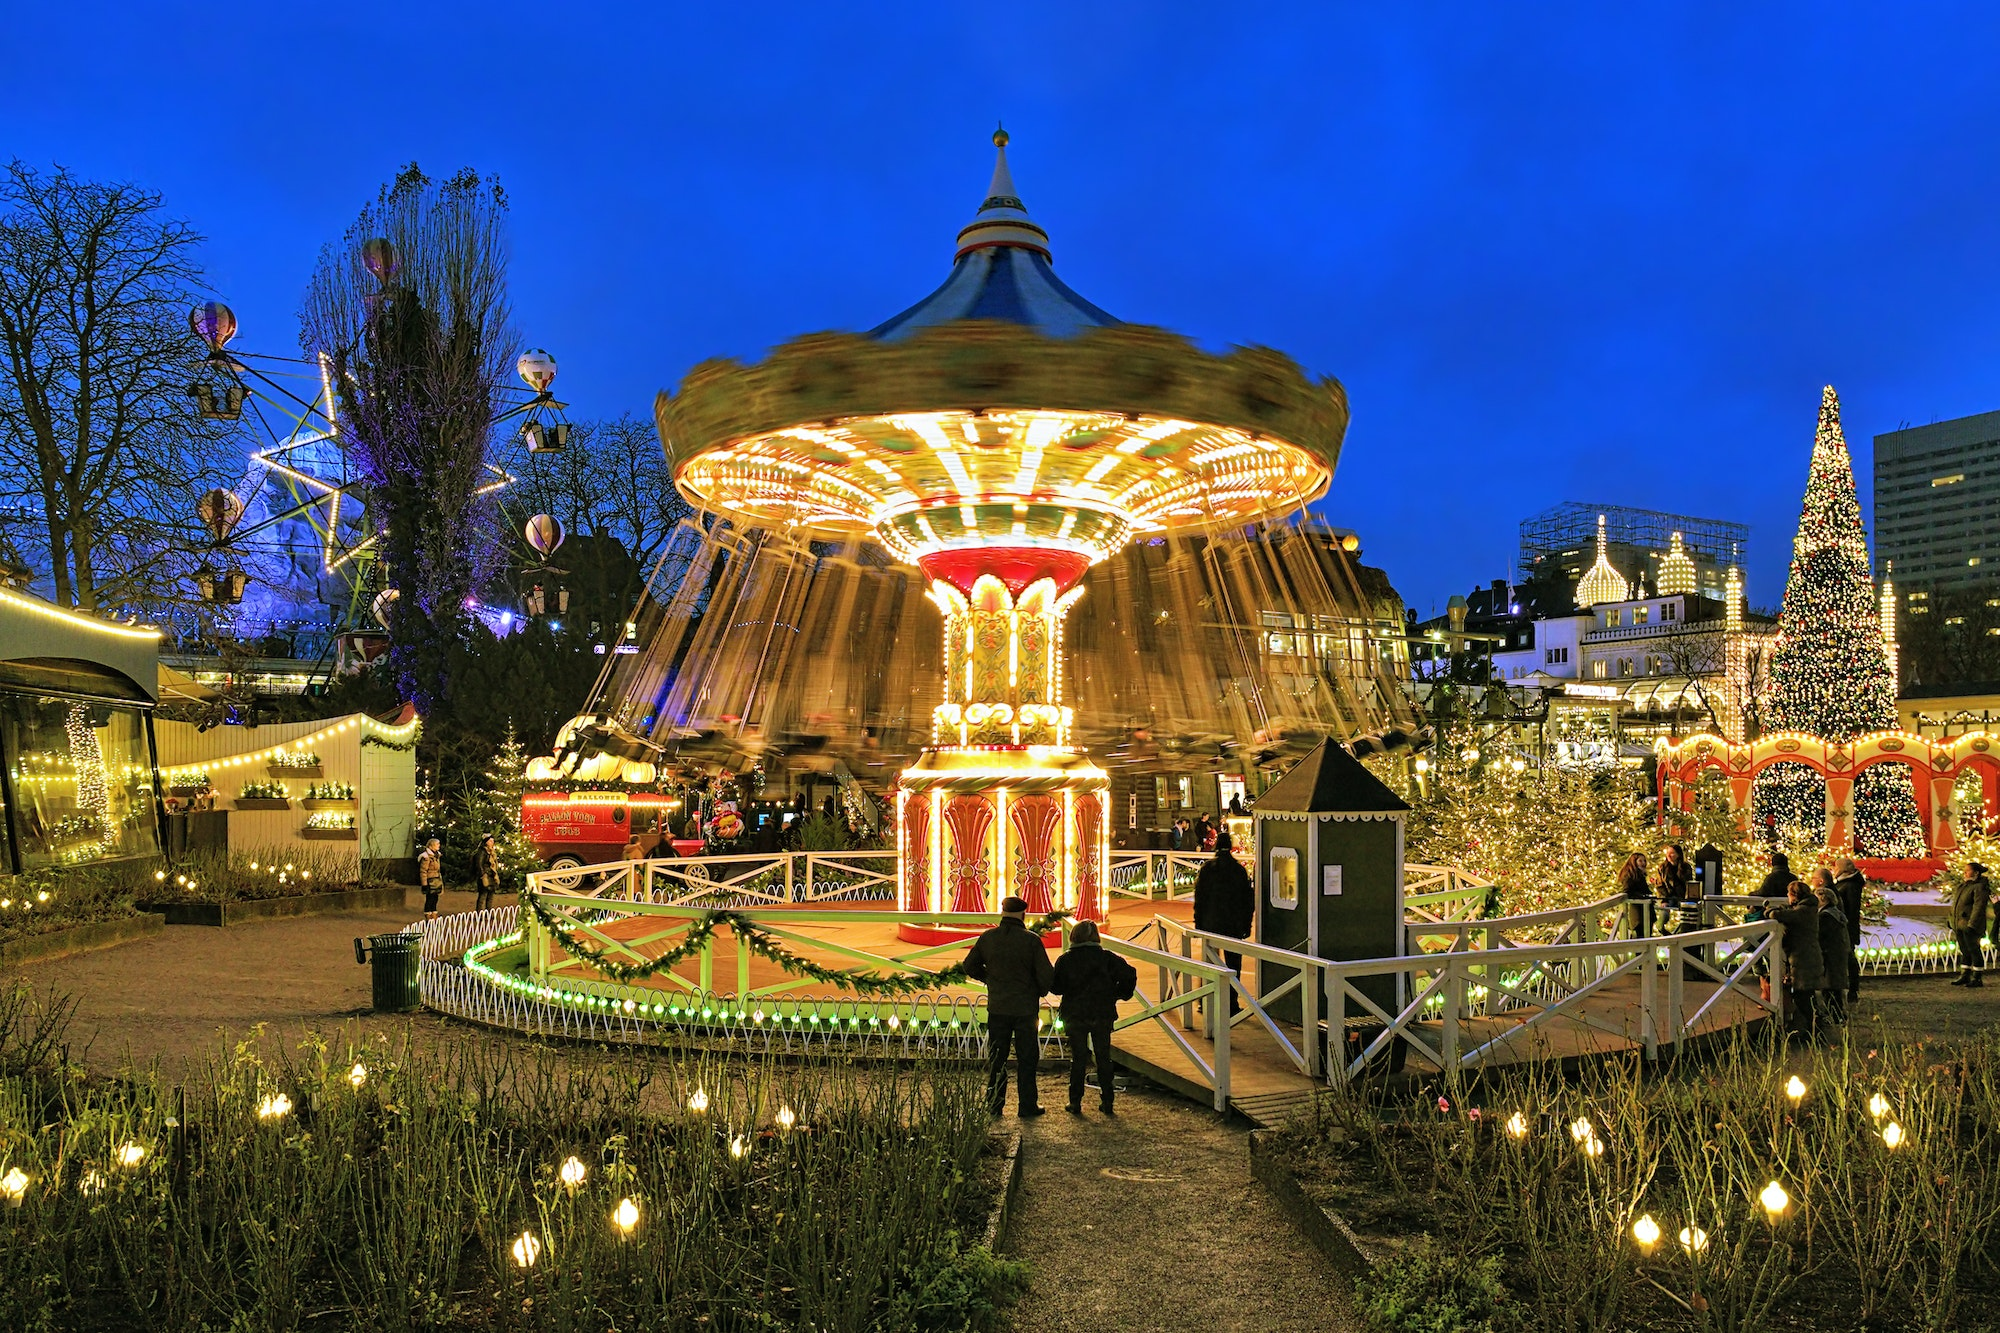 During the holidays, Copenhagen's Tivoli Gardens are decorated with bright lights and Christmas trees.